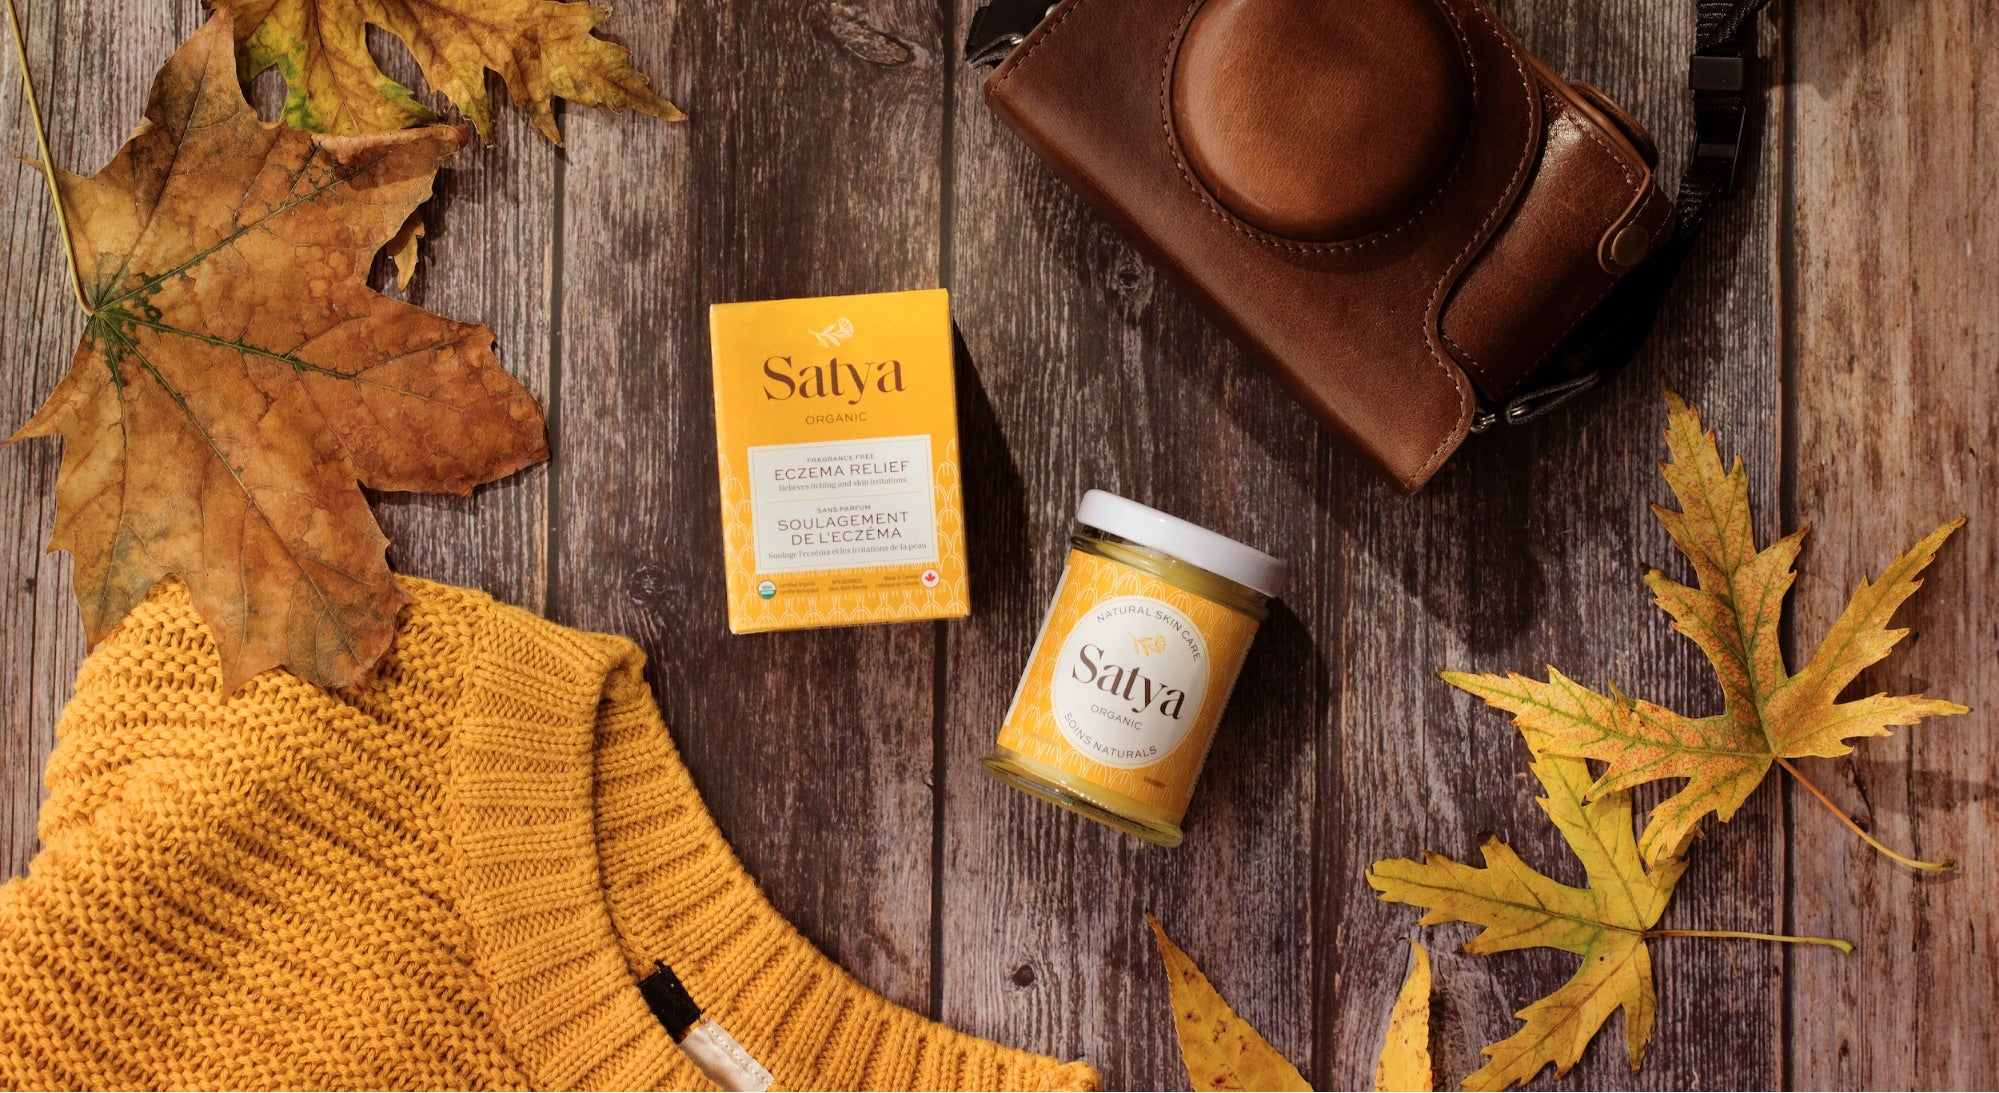 Shopify Masters: a flatlay of Satya products against a rustic, automnal backdrop featuring leaves, a camera and a yellow sweater